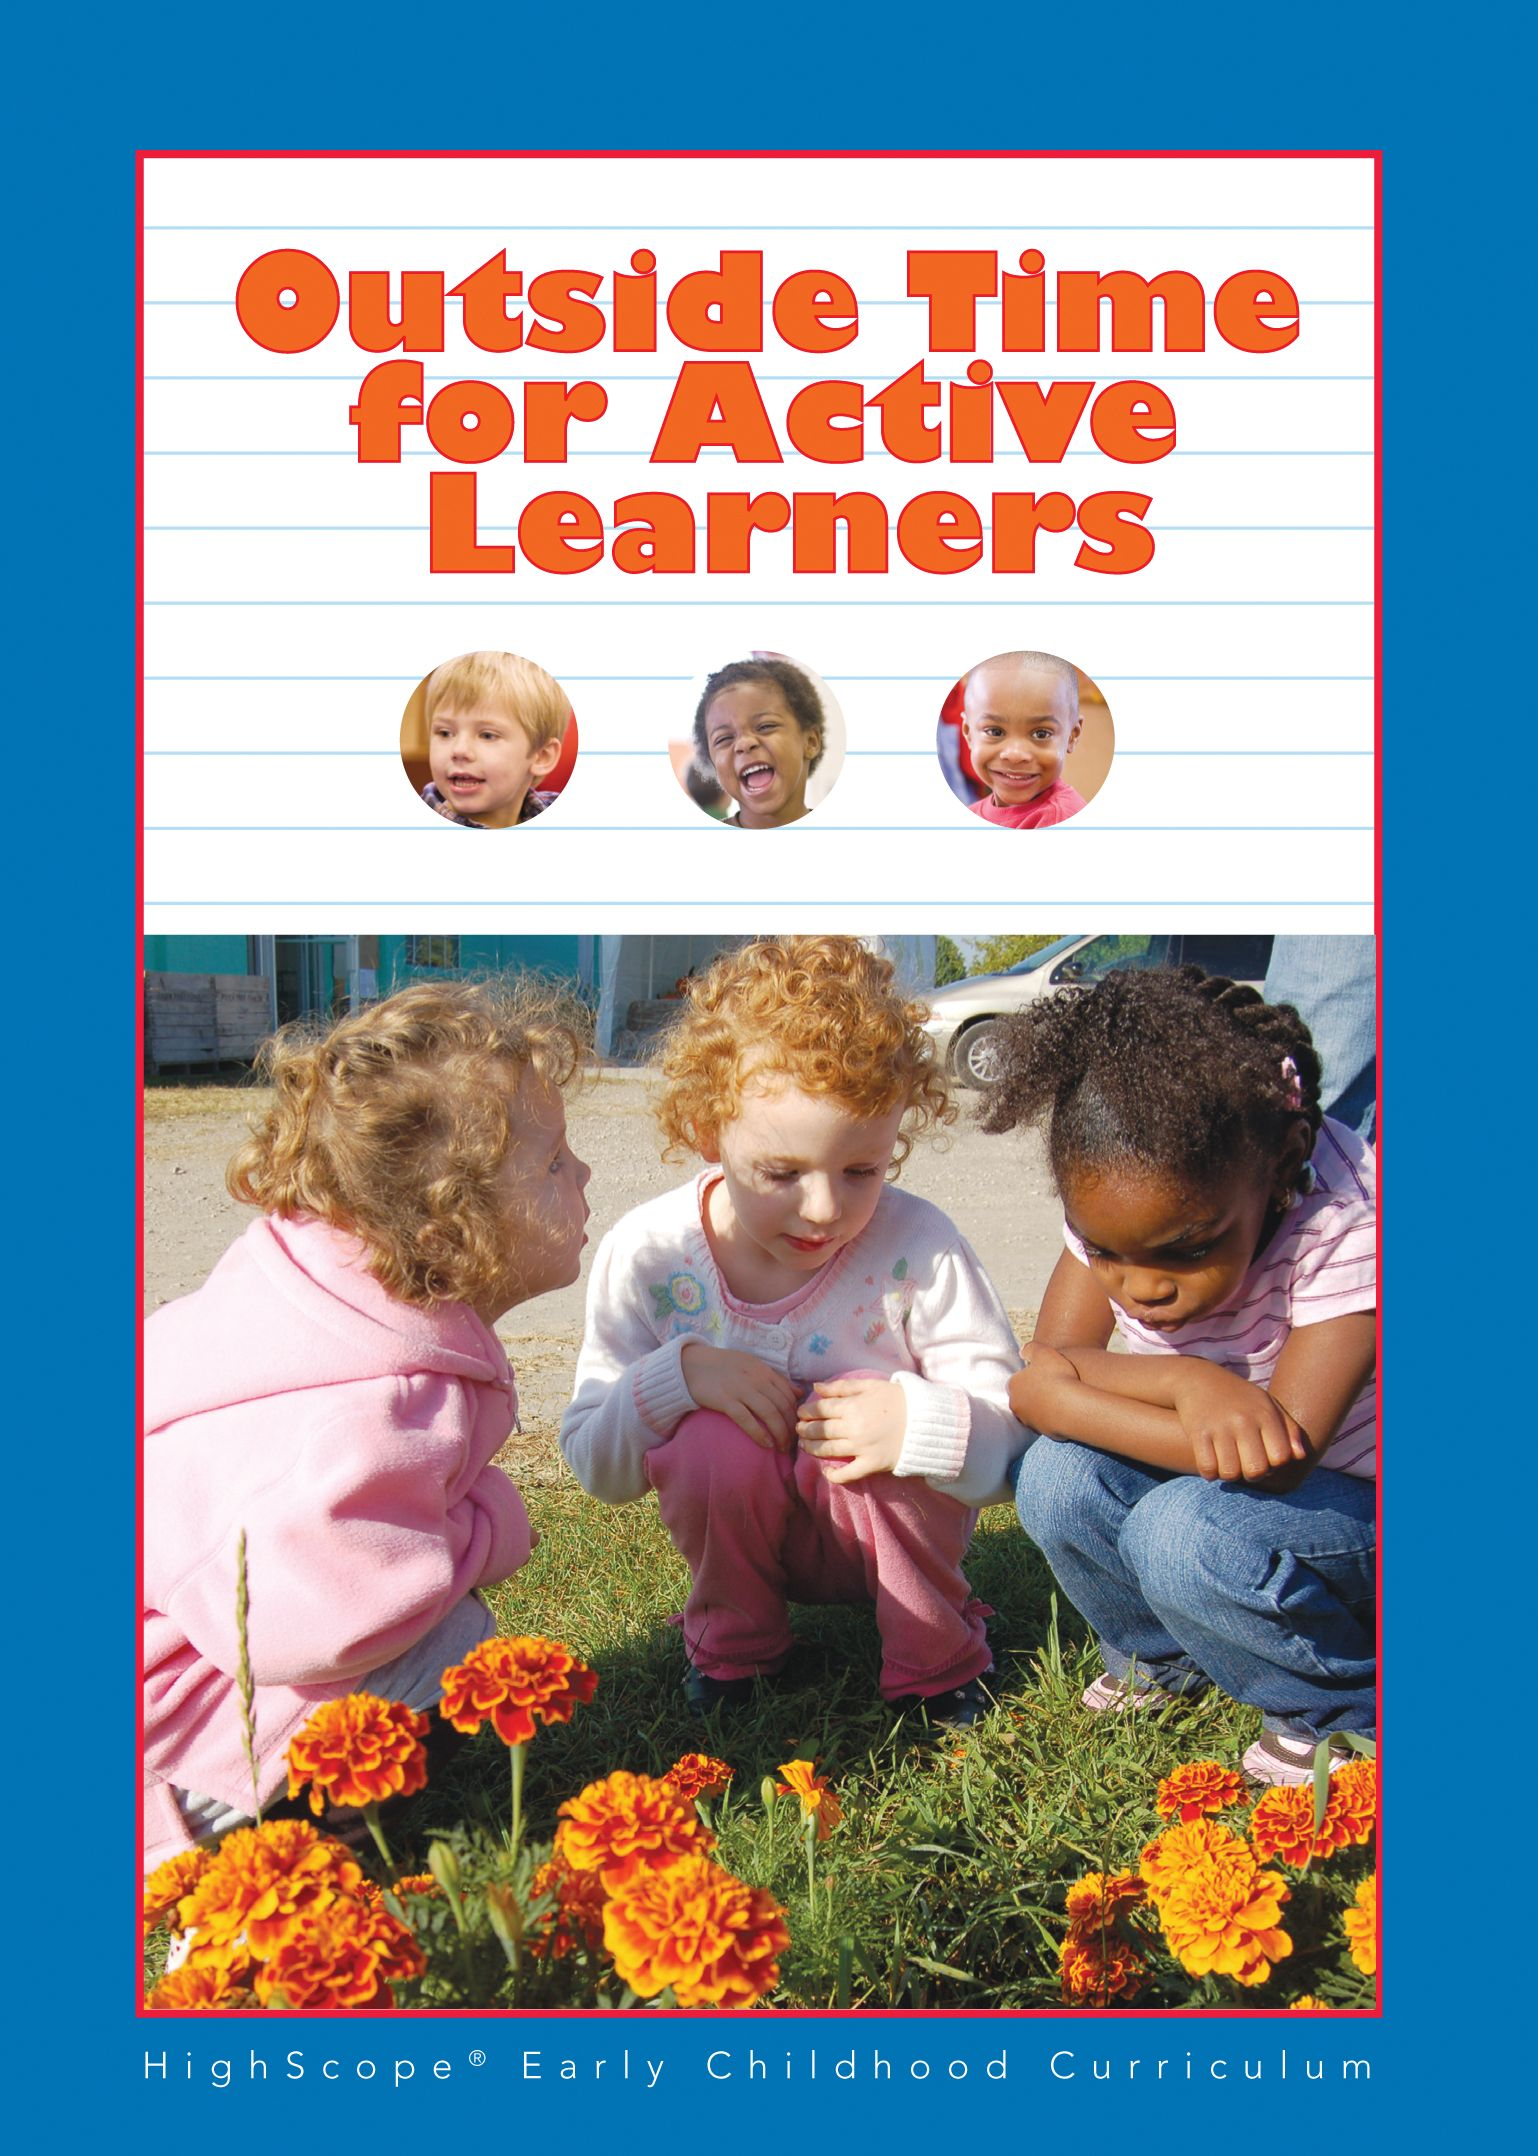 Outside Time For Active Learners DVD This Media Program Shows How